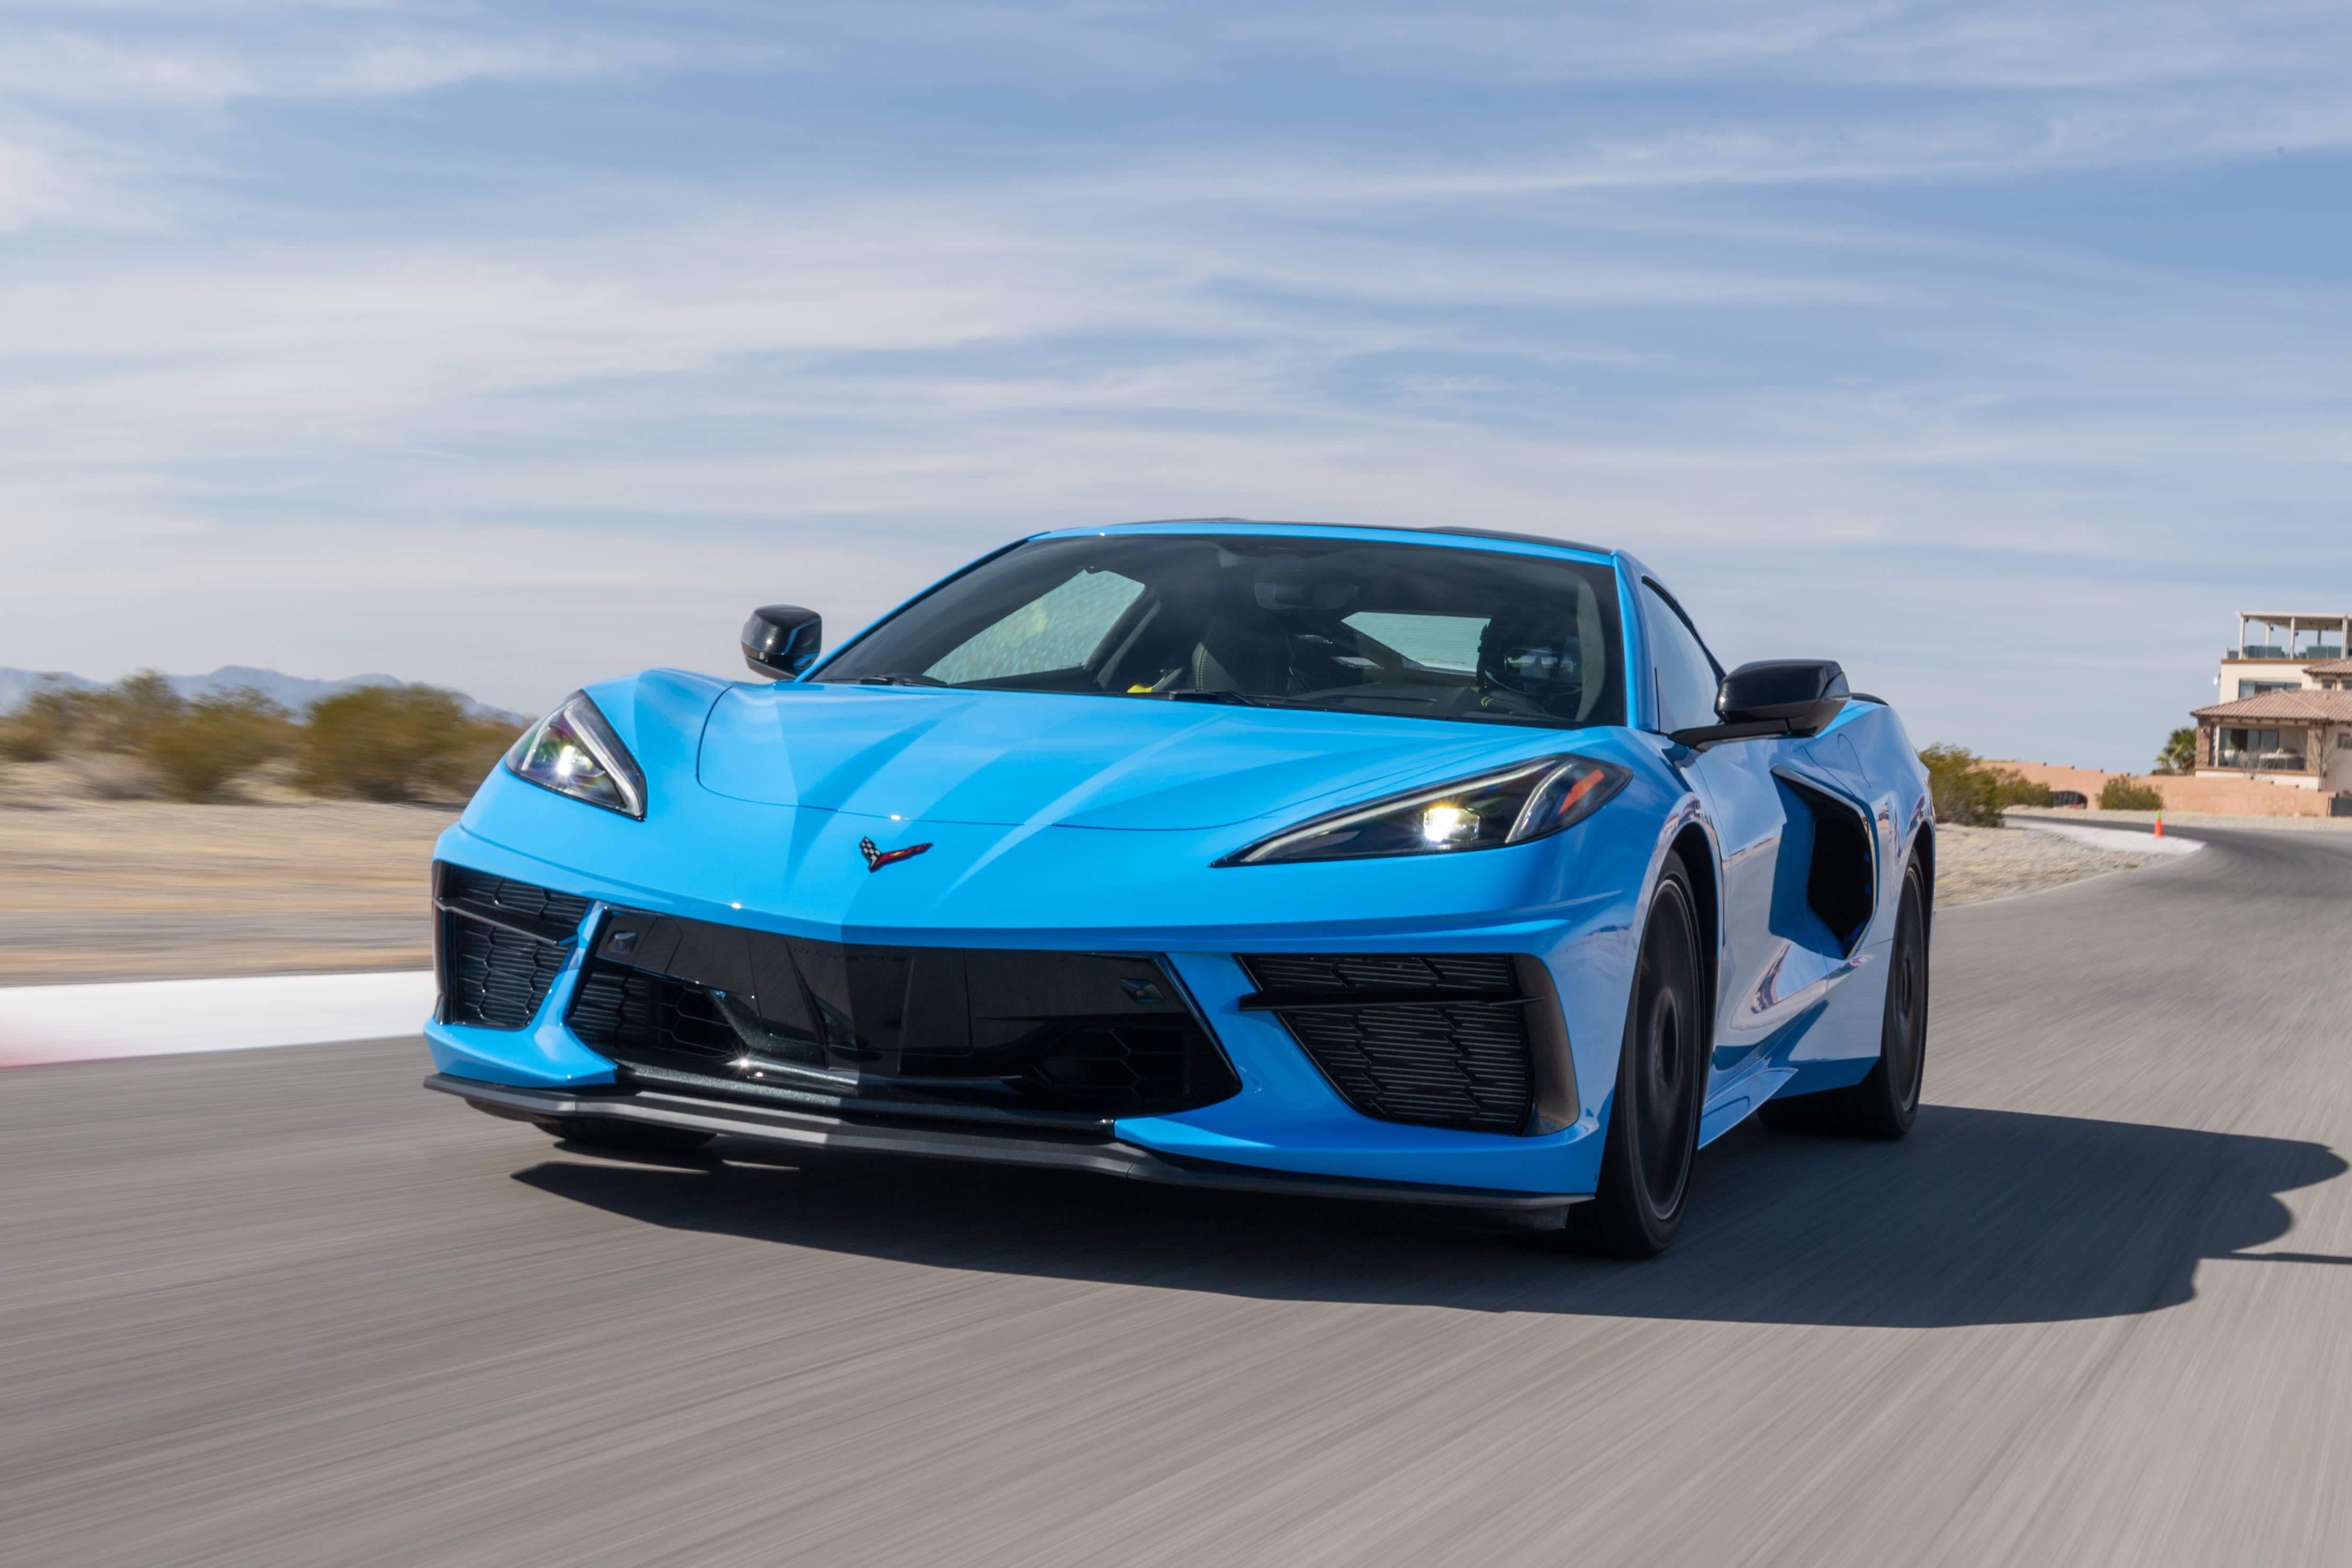 2020 Chevrolet Corvette: 5 unique features of the mid-engine supercar - CNBC